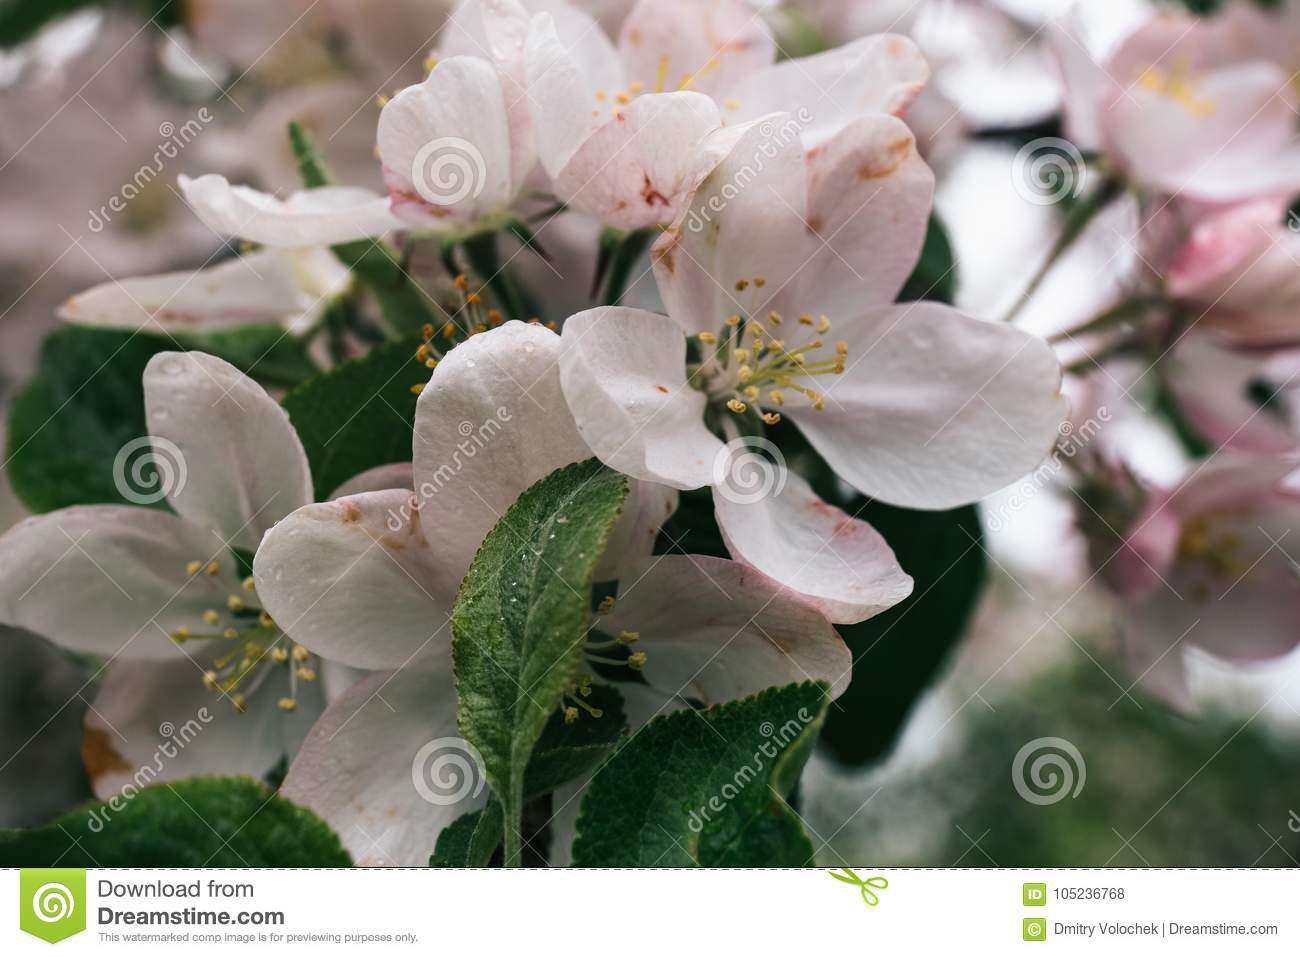 Spring White And Pink Flowers Apple Tree Blossom With Green Leaves